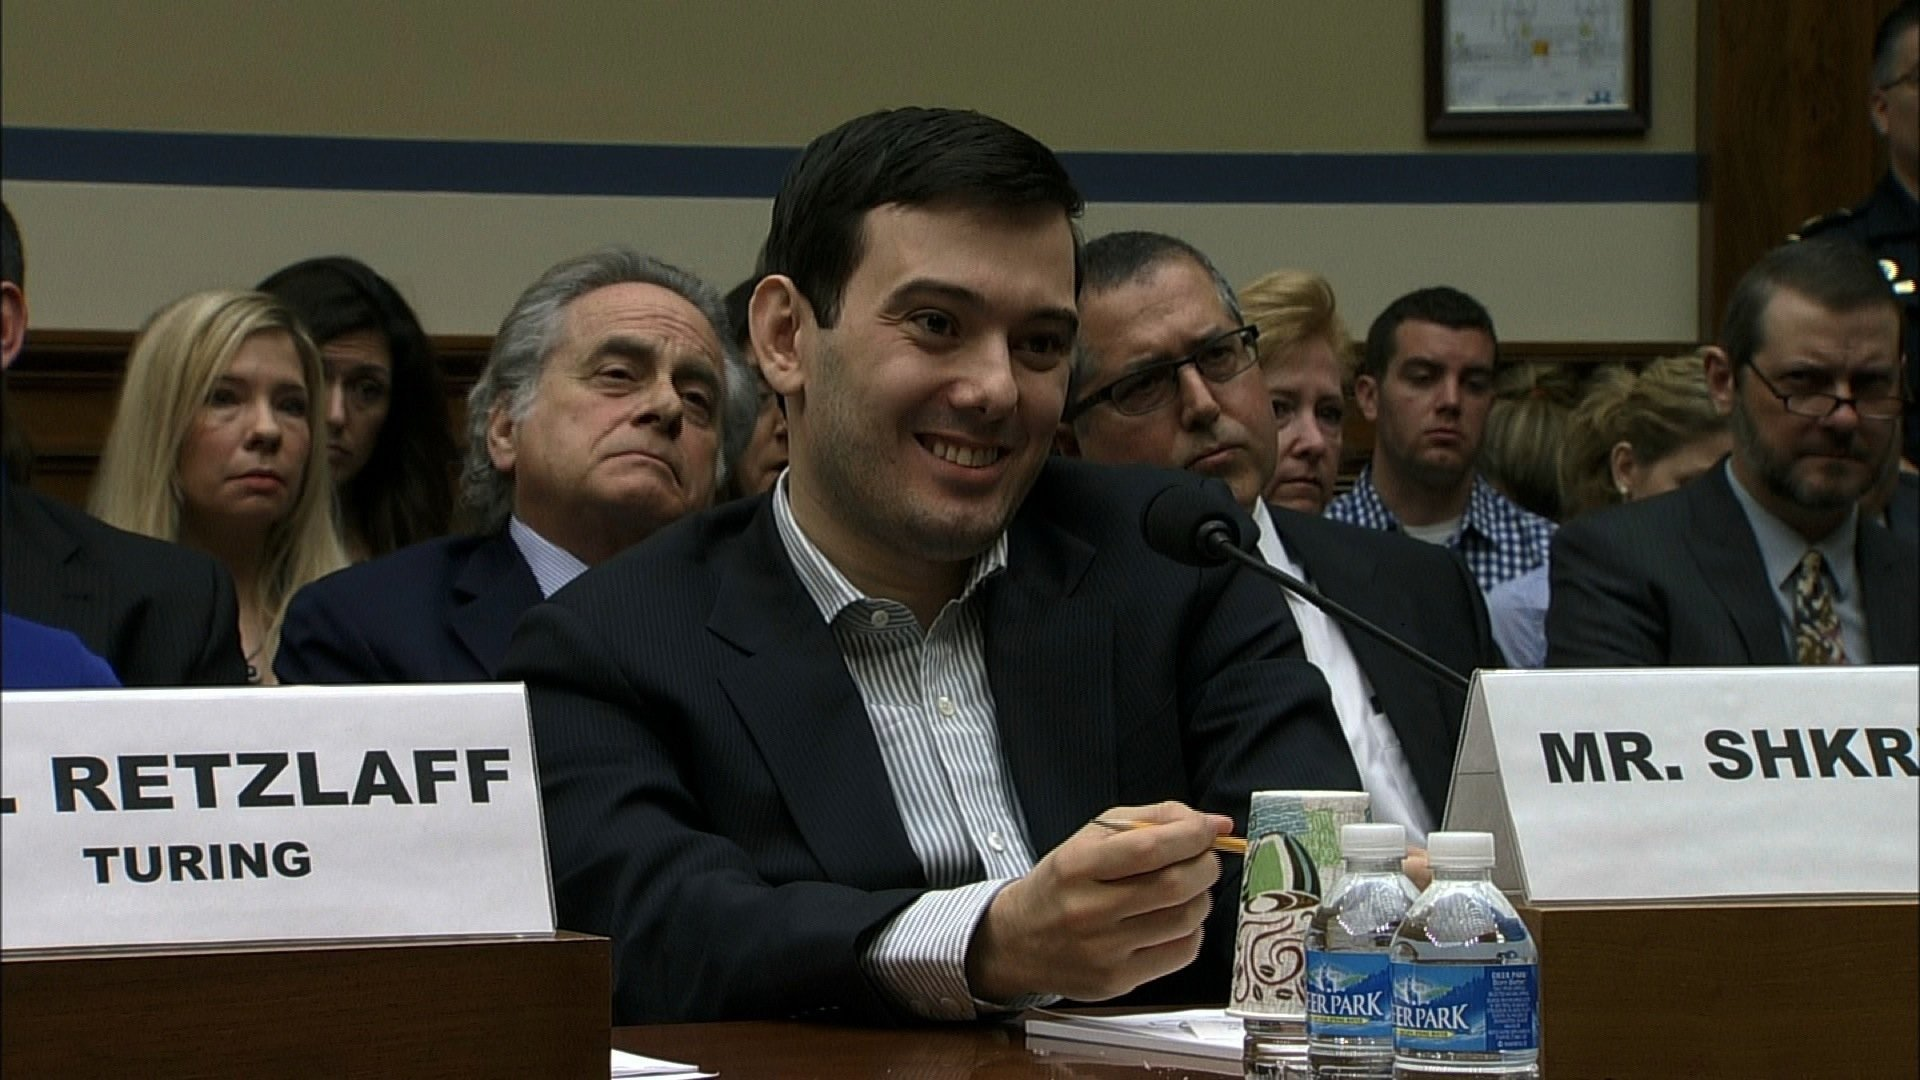 Judge Revokes Martin Shkreli's Bail, Putting Him In Jail For Months